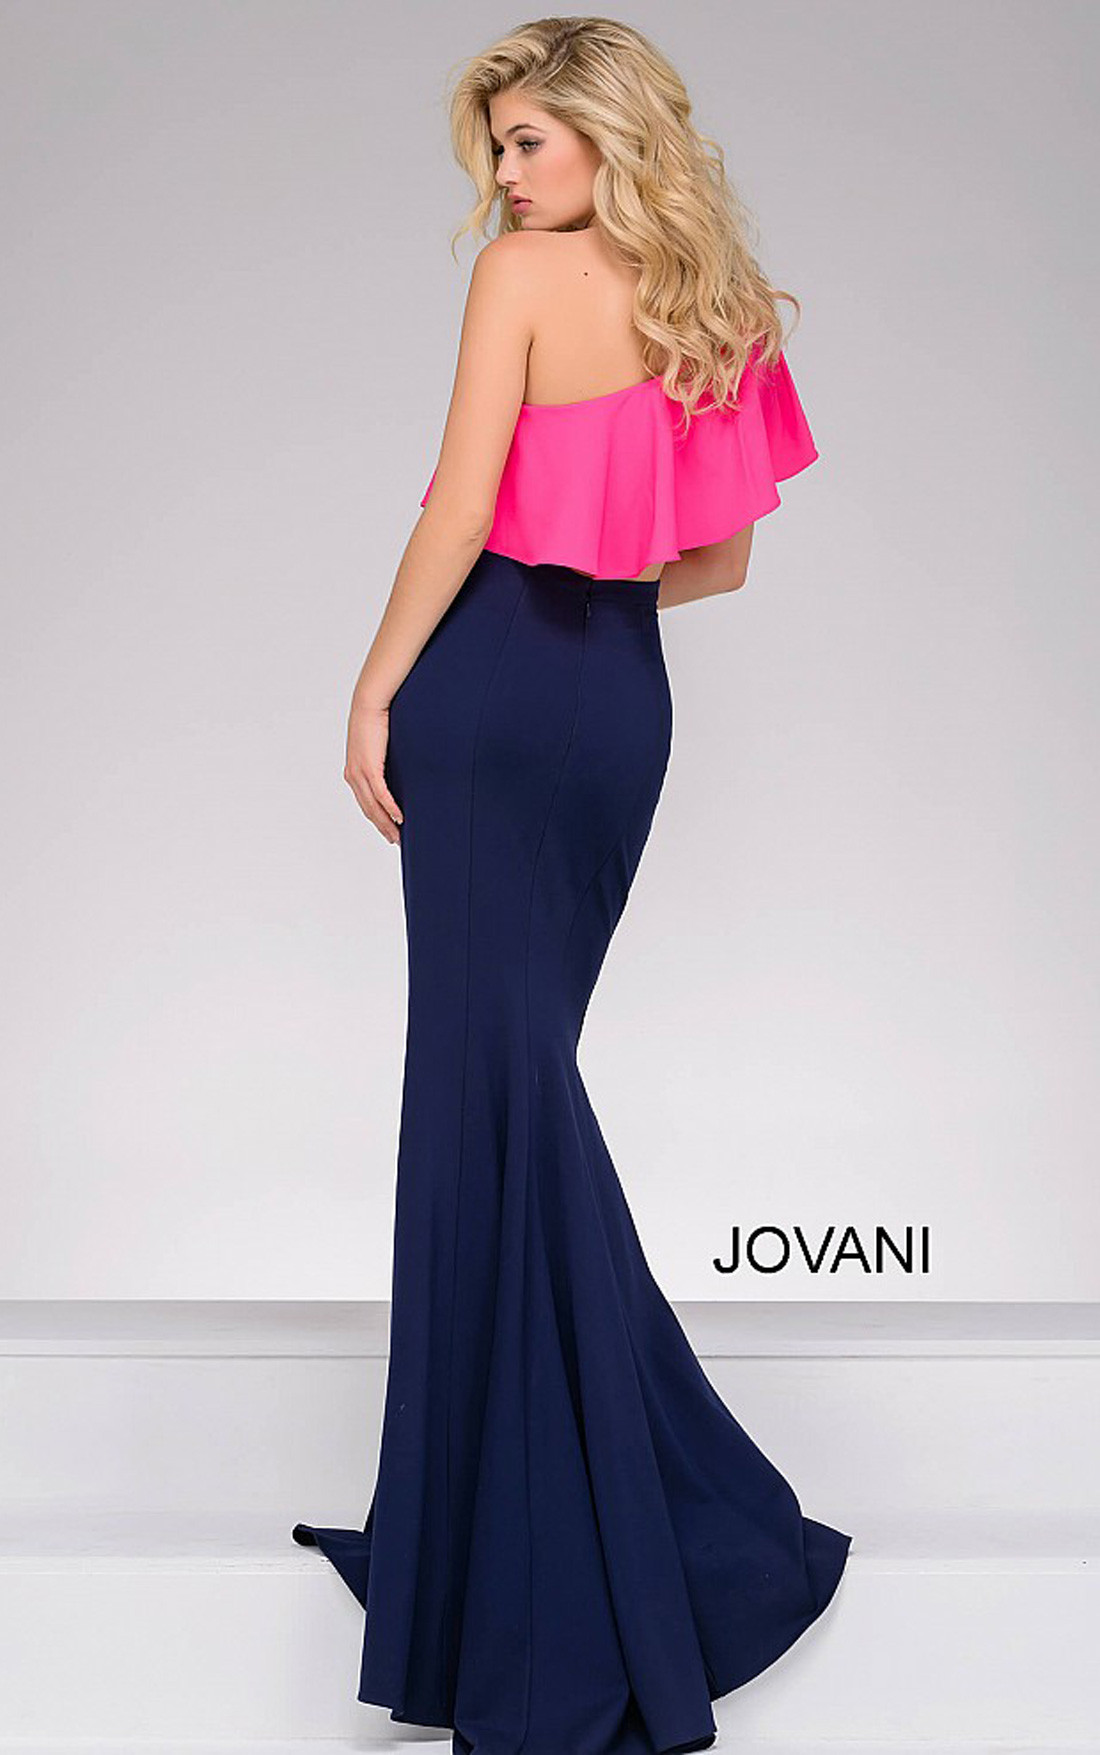 Jovani - Navy and Fuchsia One Shoulder Two-Piece Dress (49532)